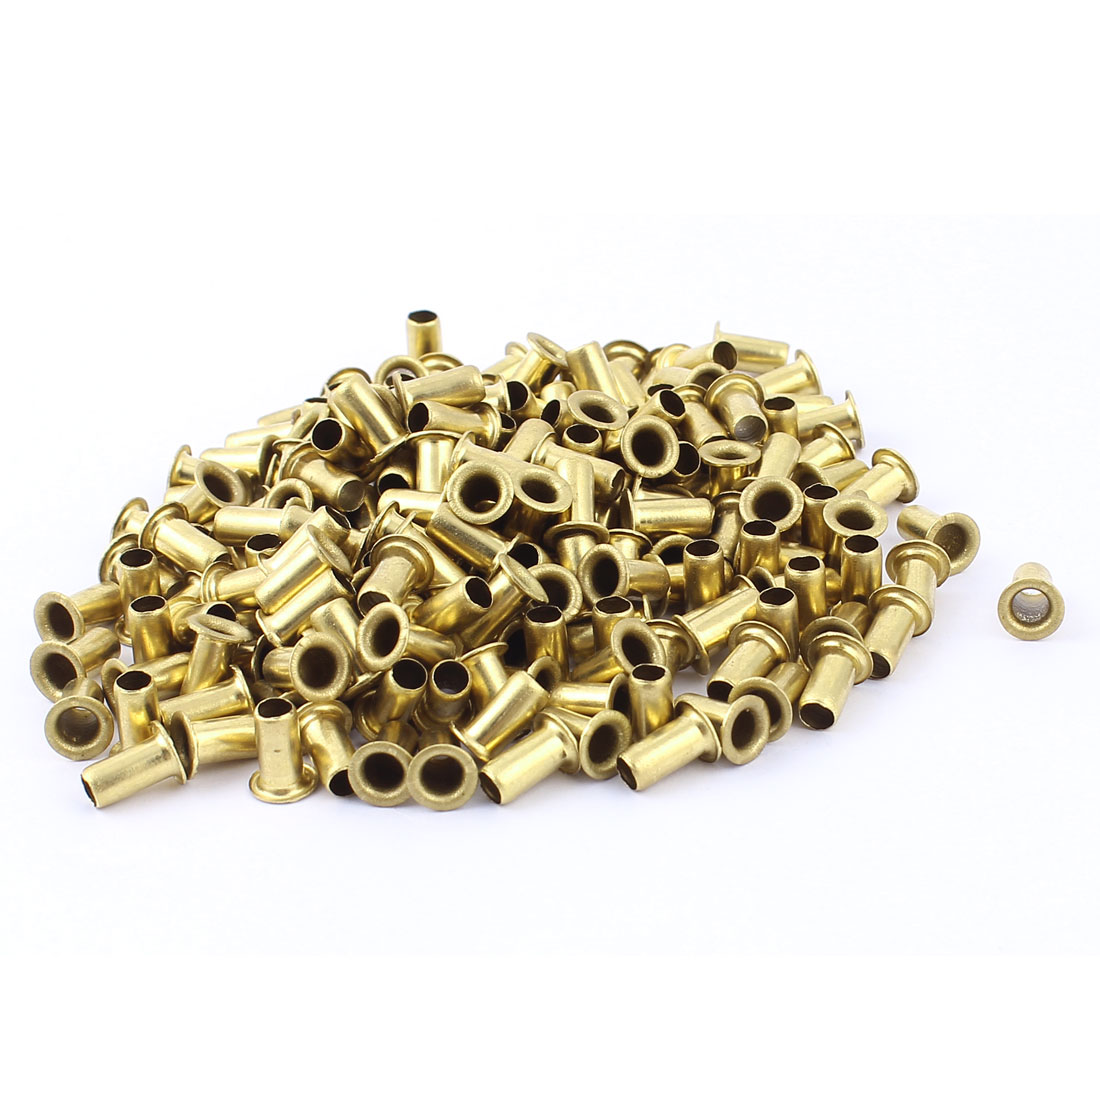 200pcs M5x10 Through Hole Rivets Hollow Grommets PCB Circuit Board